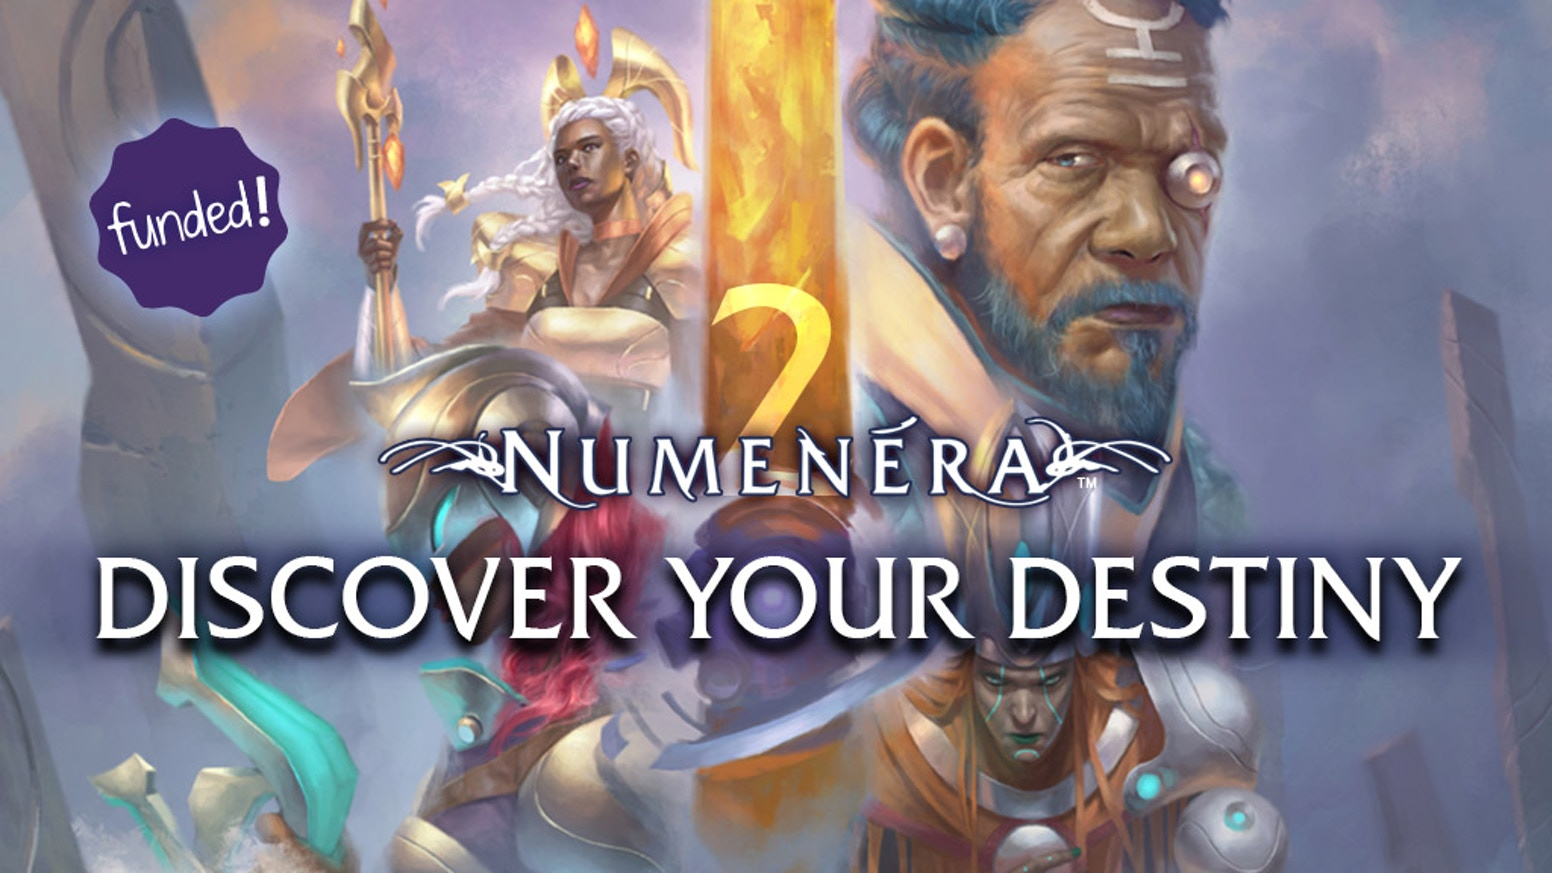 Discover the Ninth World, then fulfill your destiny to lift it from an age of darkness. Two new corebooks, plus loads of stretch goals, for Numenera.